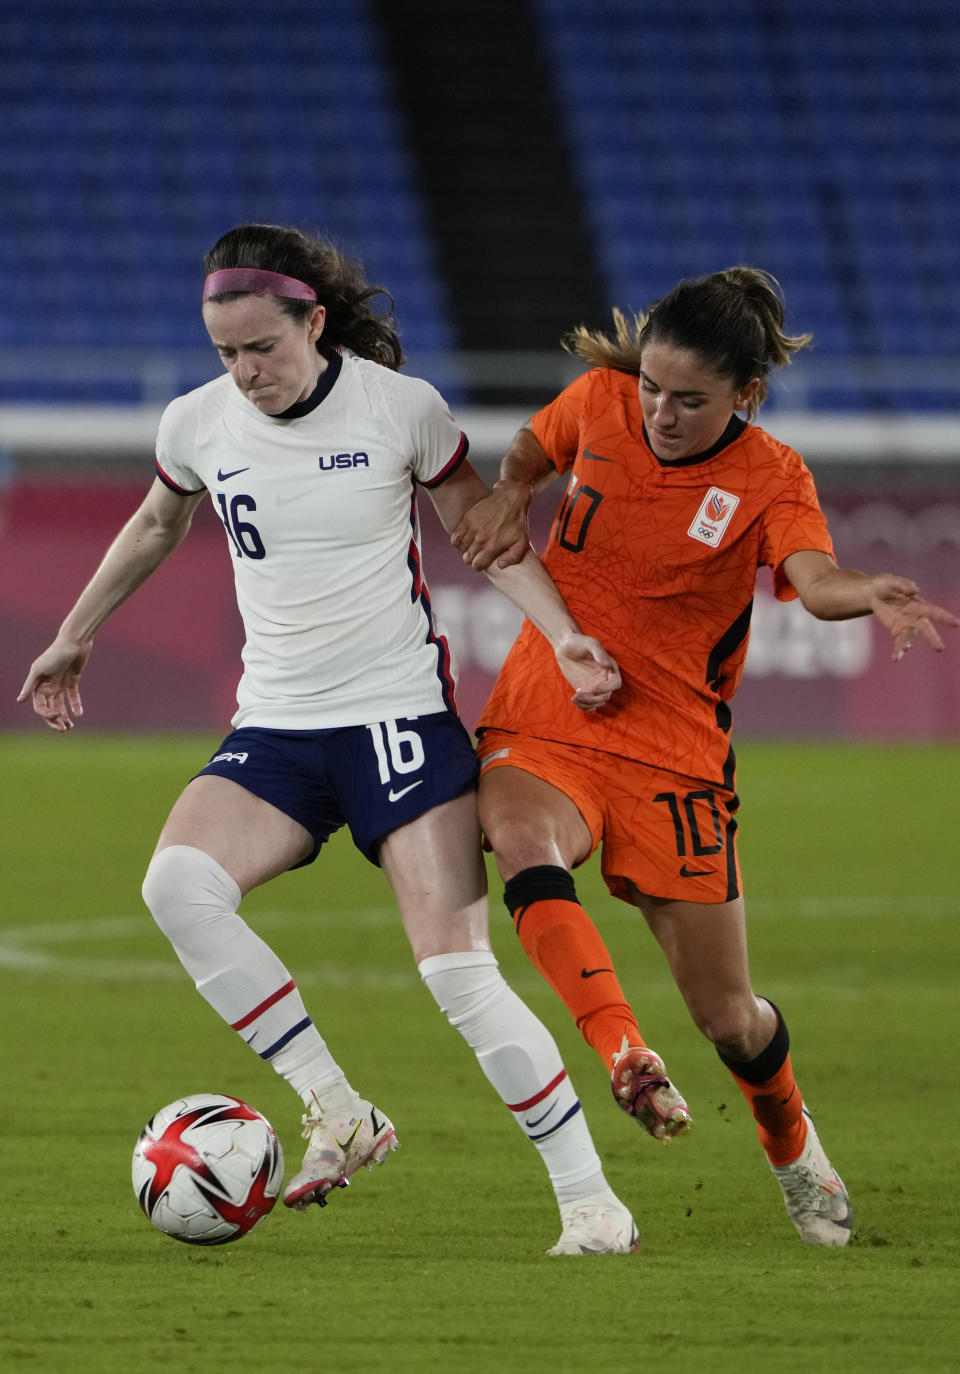 United States' Rose Lavelle, left, and Netherlands' Danielle van de Donk battle for the ball during a women's quarterfinal soccer match at the 2020 Summer Olympics, Friday, July 30, 2021, in Yokohama, Japan. (AP Photo/Kiichiro Sato)